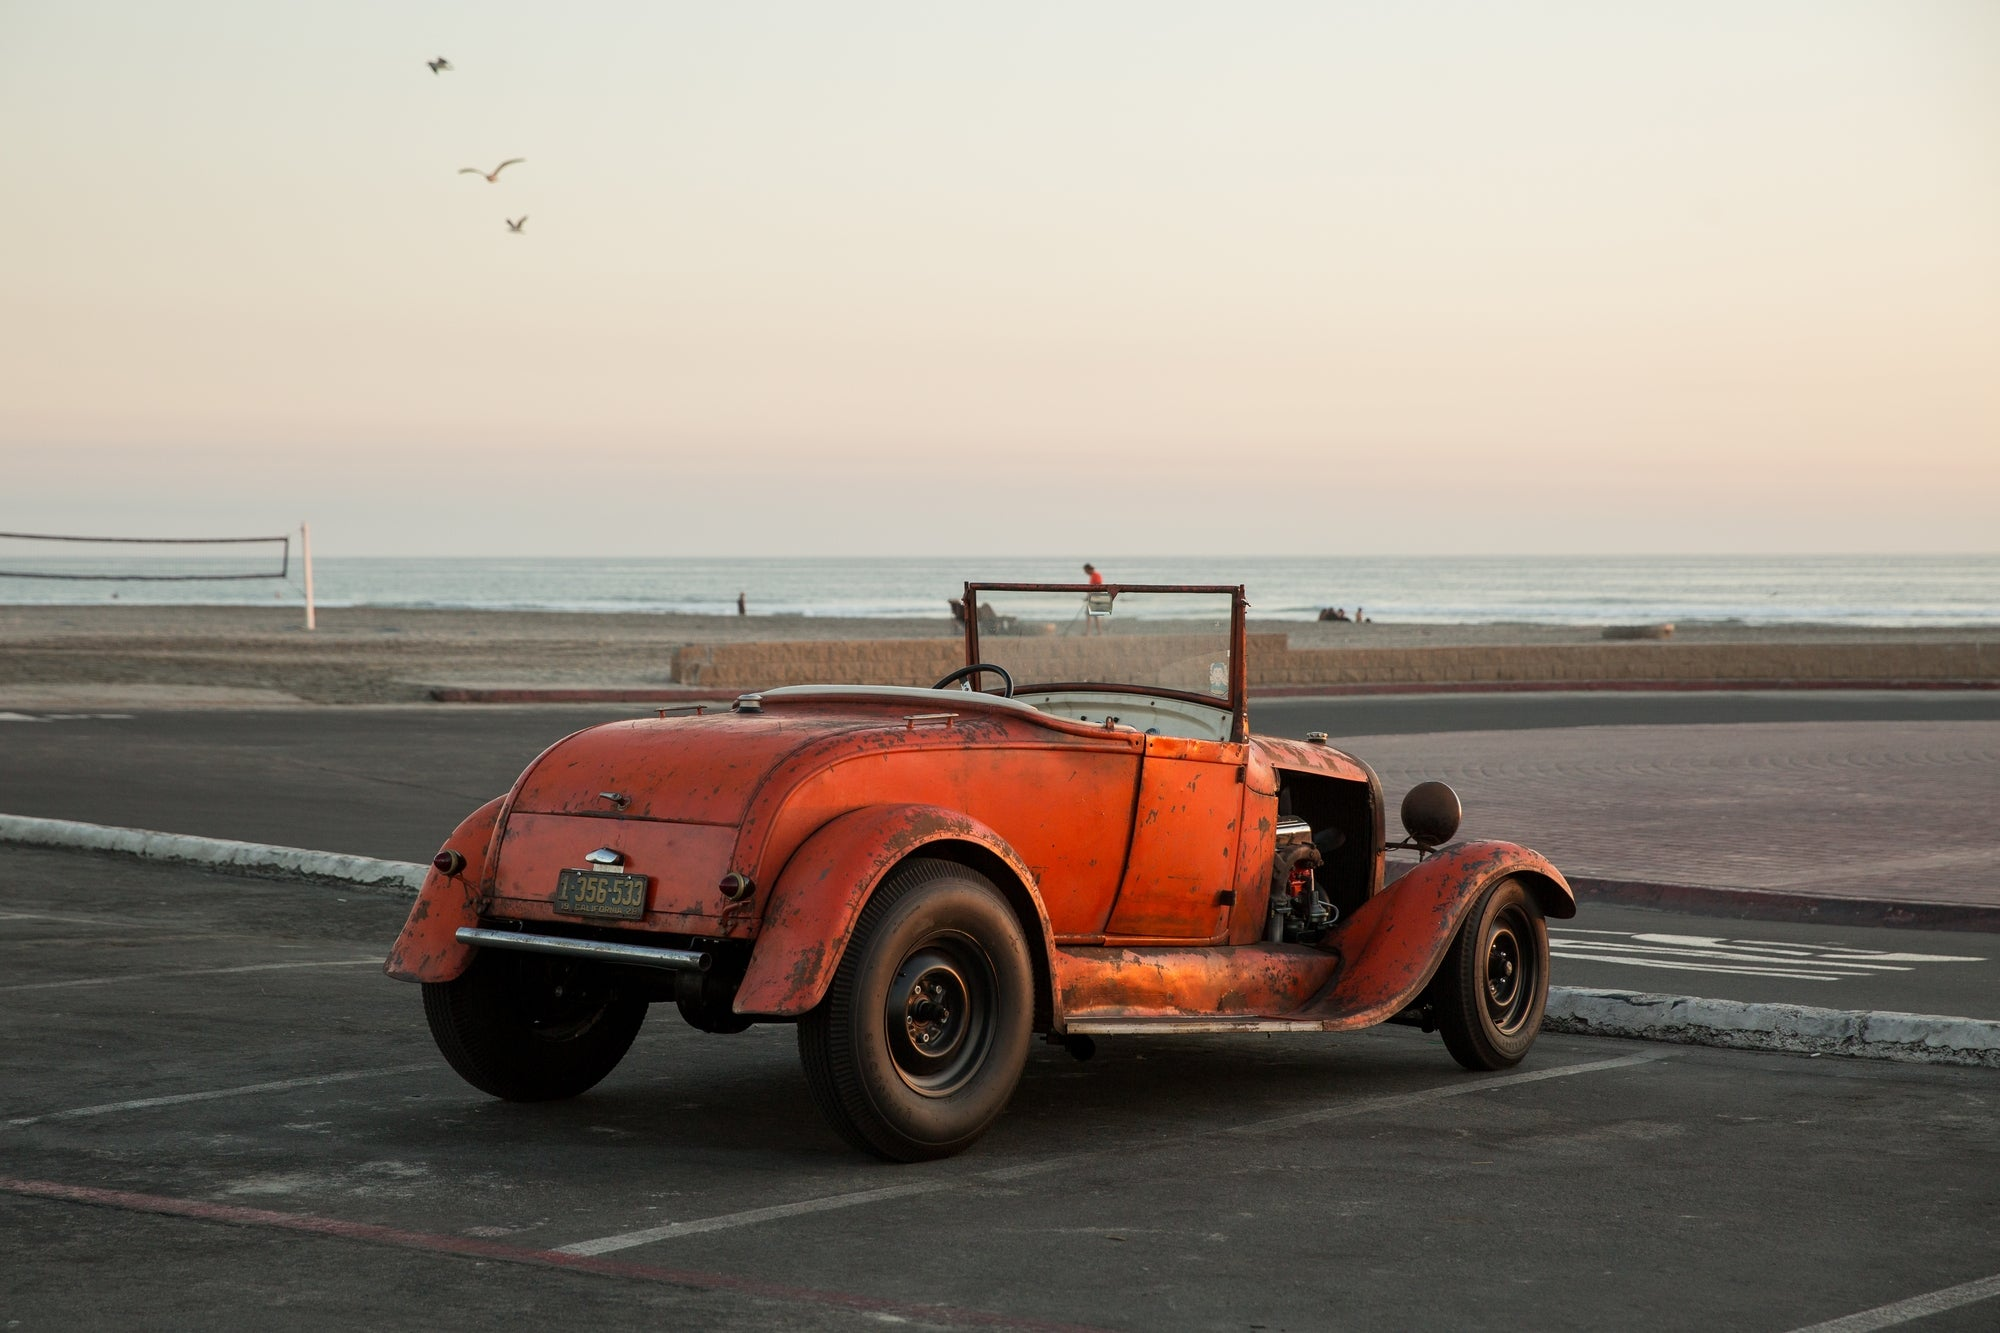 Perfect Imperfection: Haifley Bros. 1928 Ford Model A Roadster